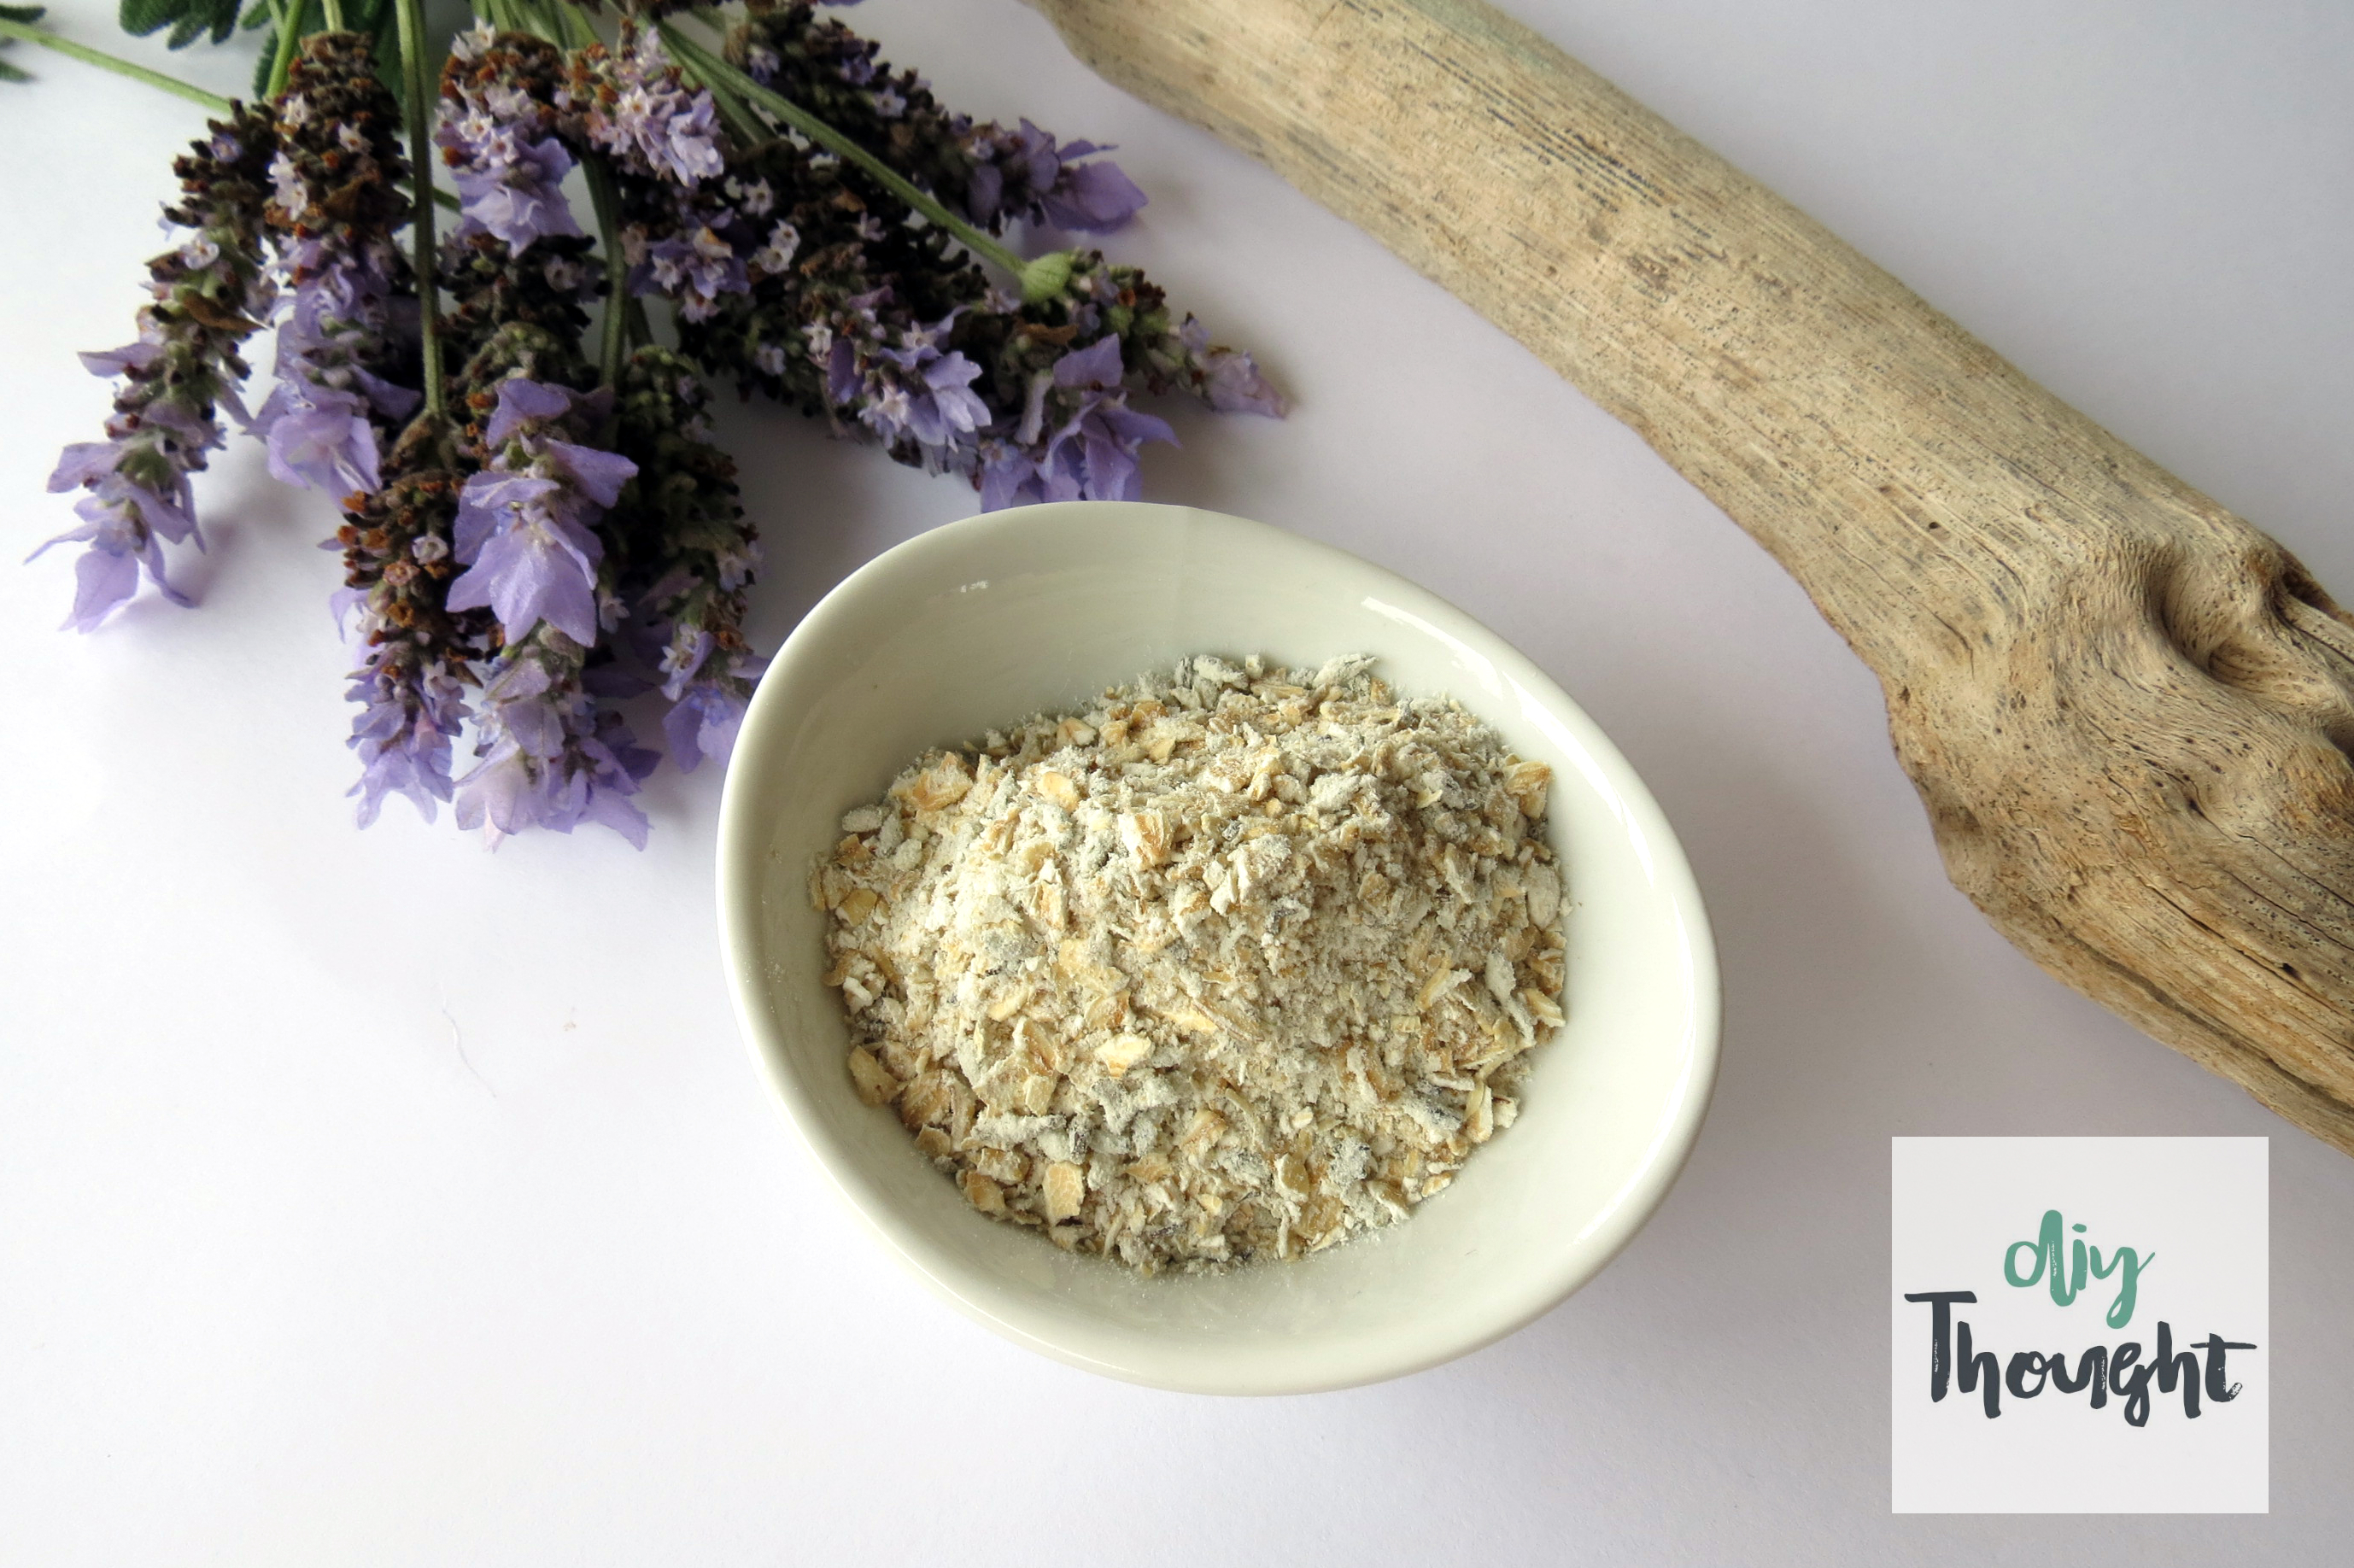 Homemade Lavender & Oat Bath Soak - diy